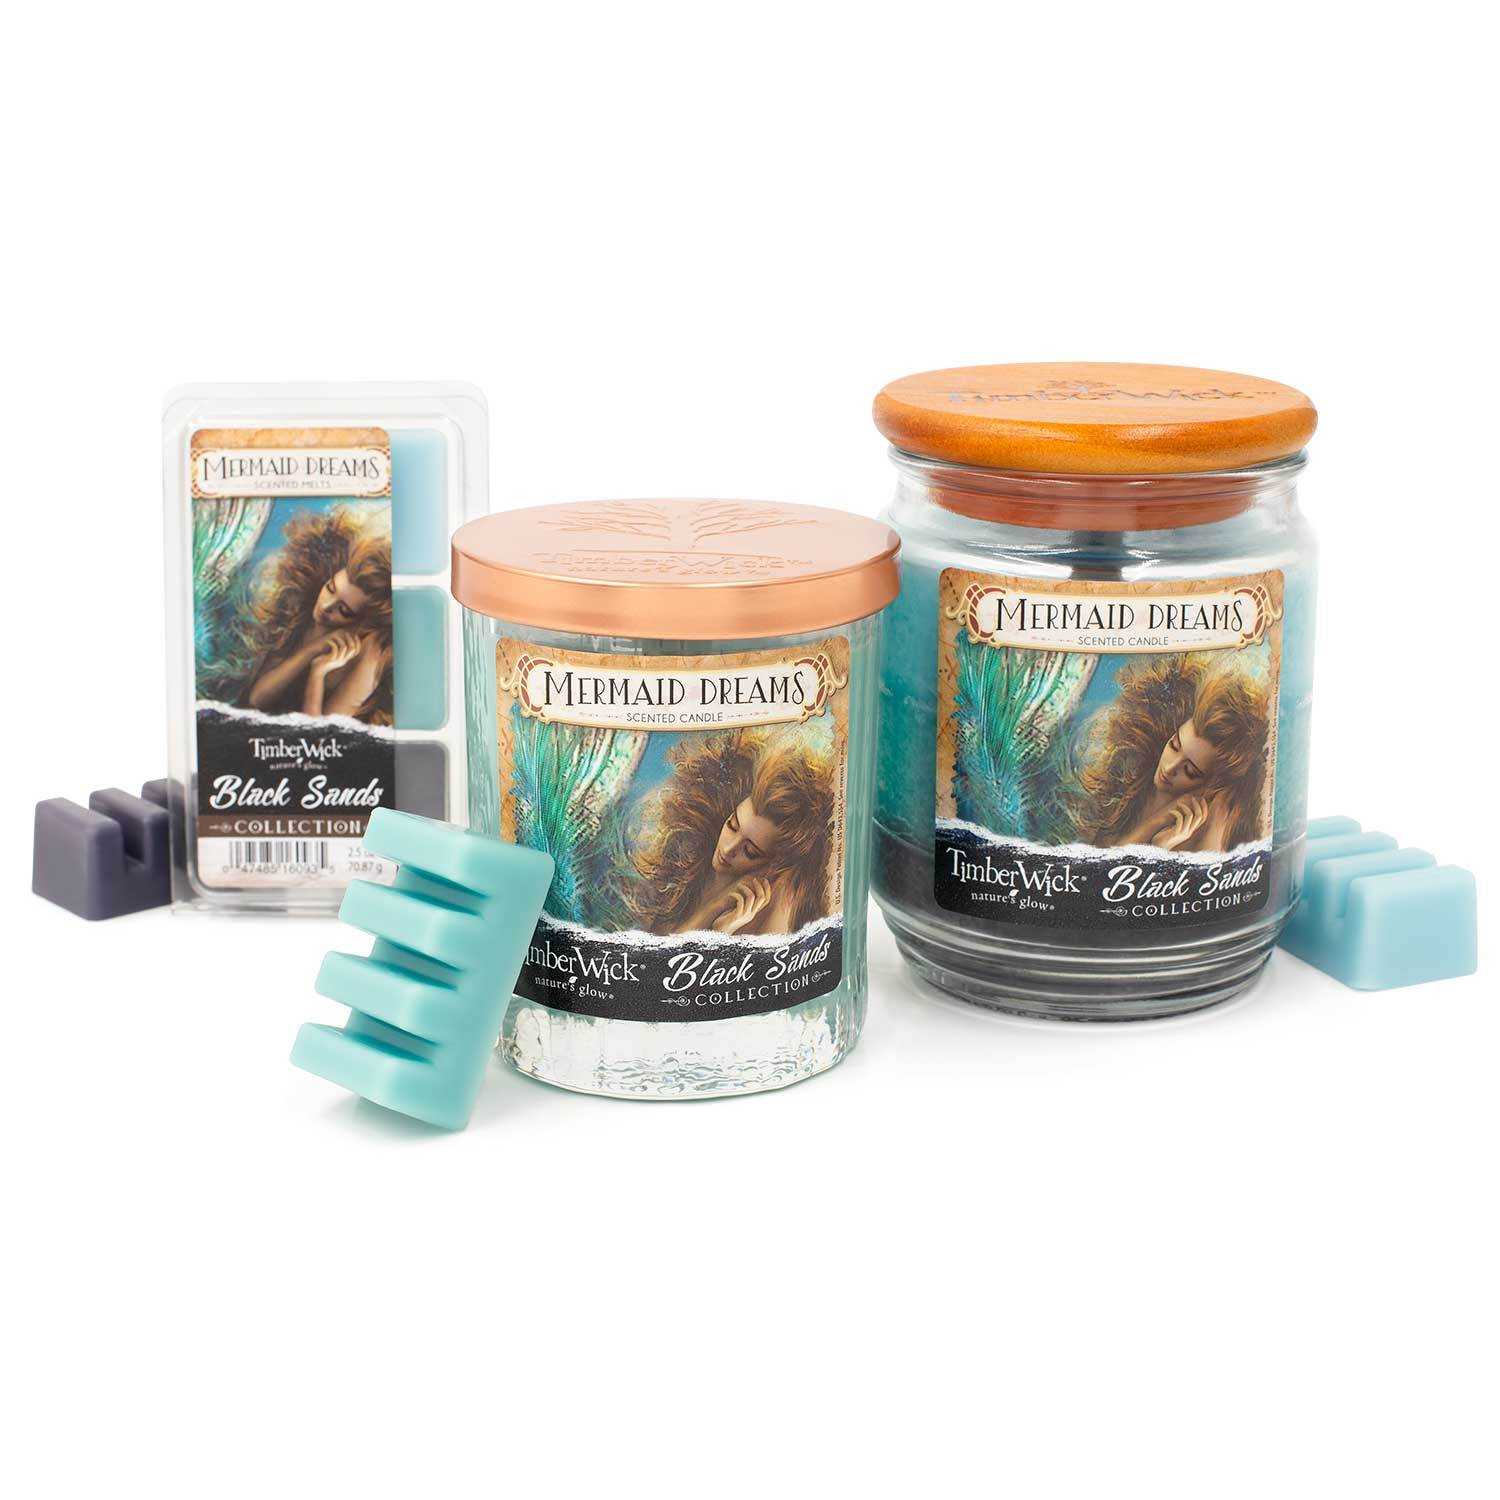 Mermaid Dreams Scented Wax Melts Melts Candlemart.com $ 2.49